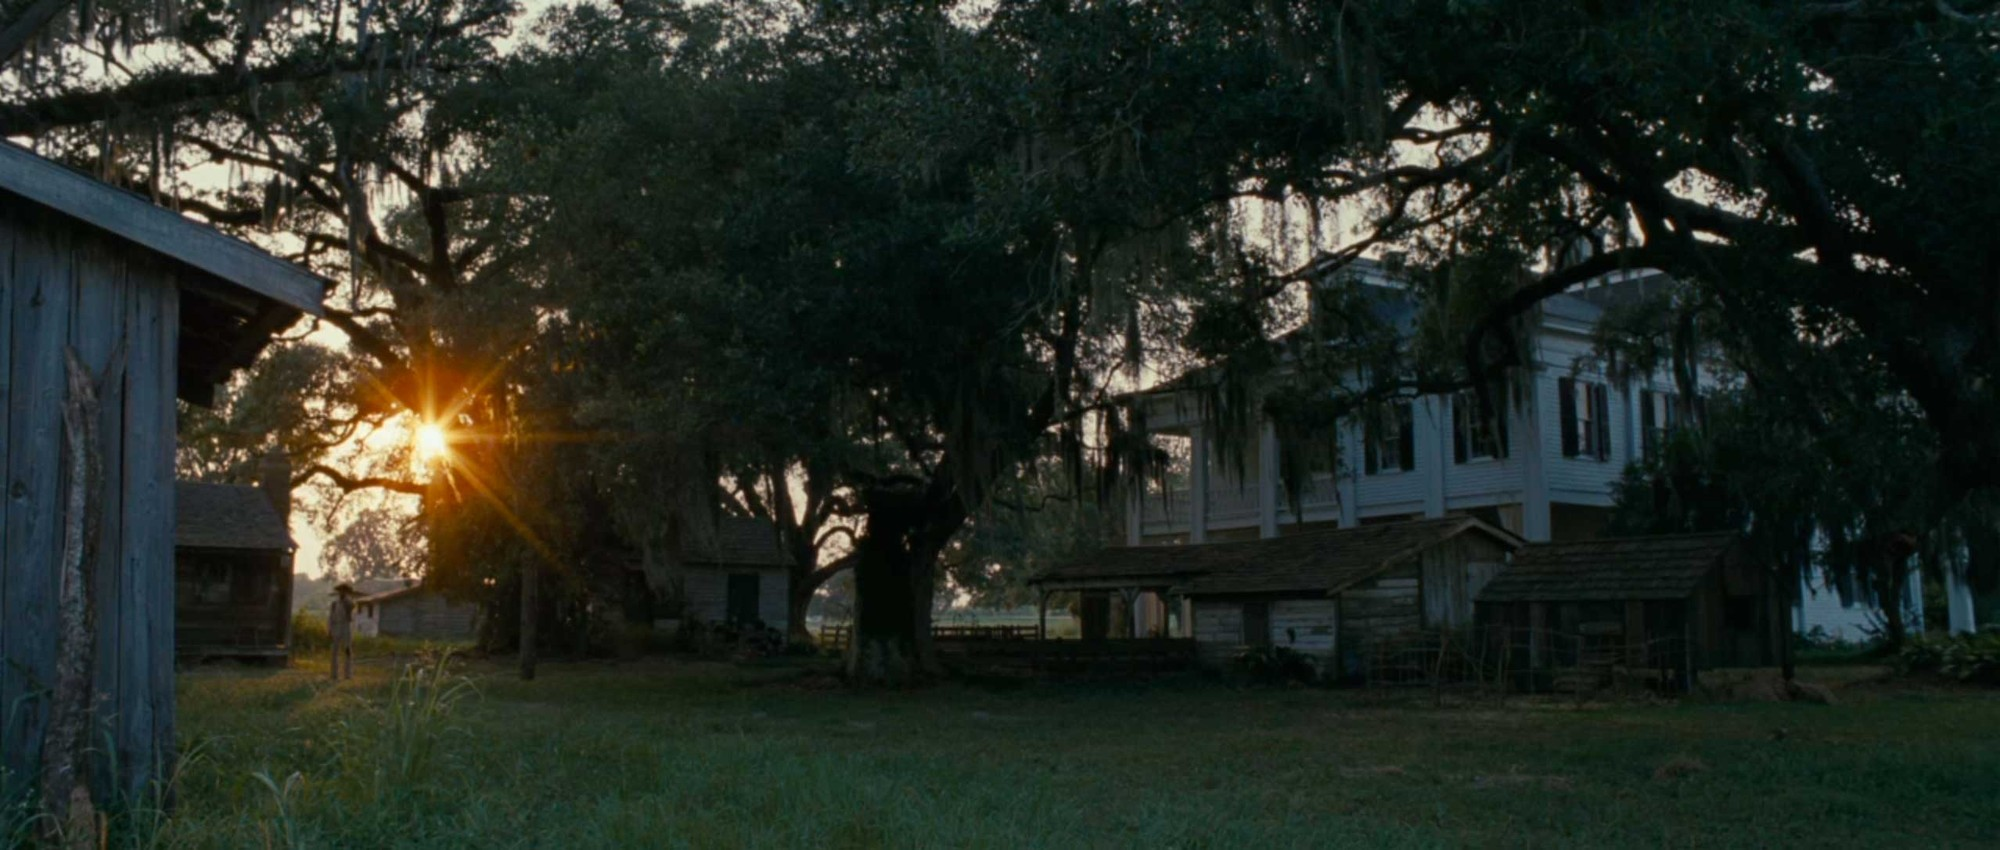 "Steve McQueen: A Master of Architecture in Film, Plantation in ""12 Years a Slave"". Image Courtesy of indienyc.com"